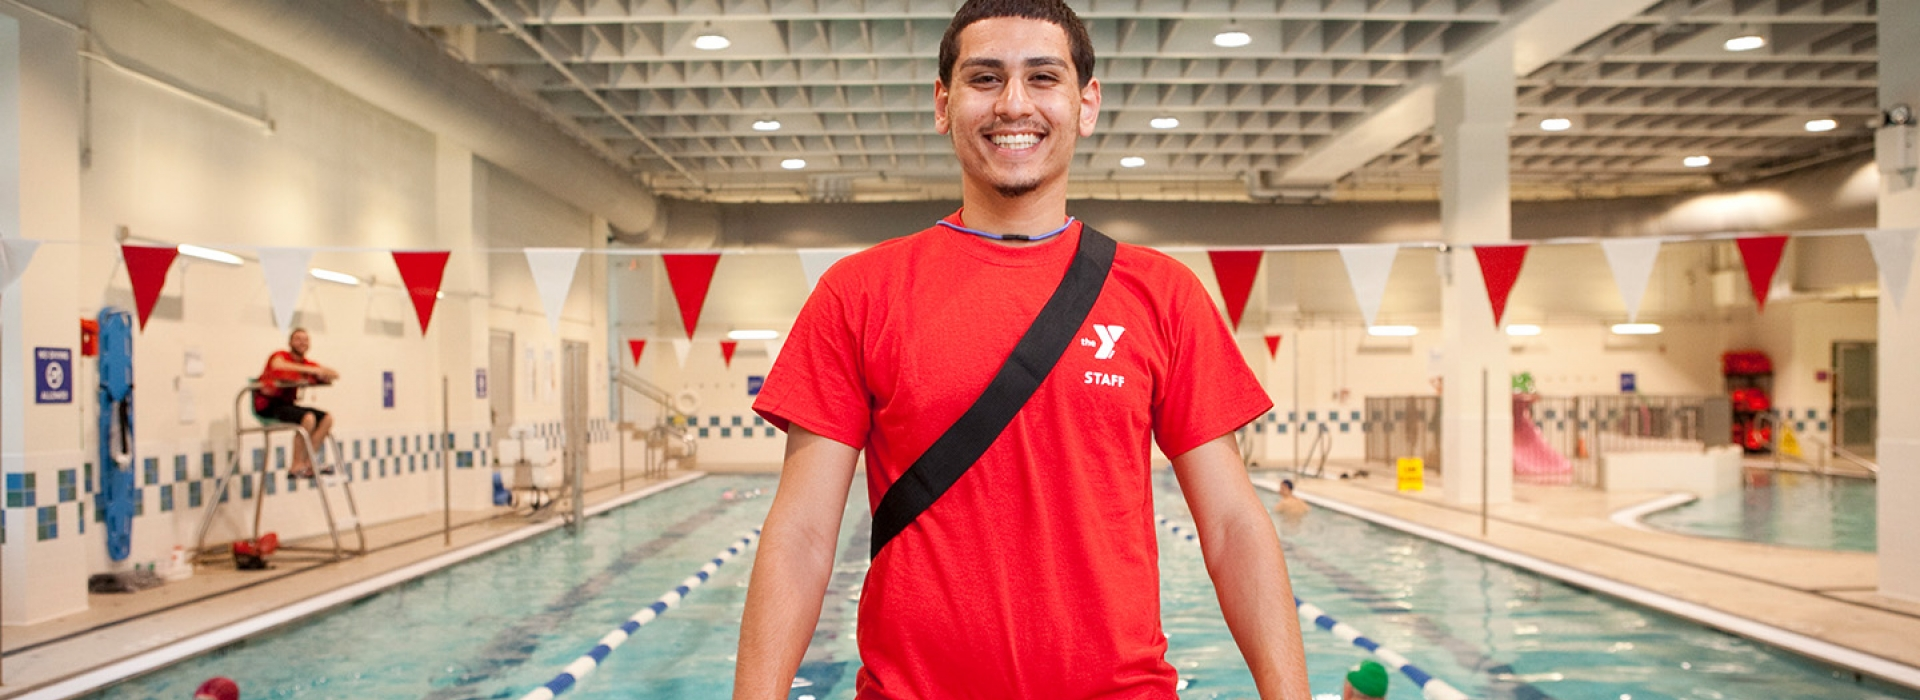 Flushing become a lifeguard new york city 39 s ymca - Ymca flushing swimming pool schedule ...